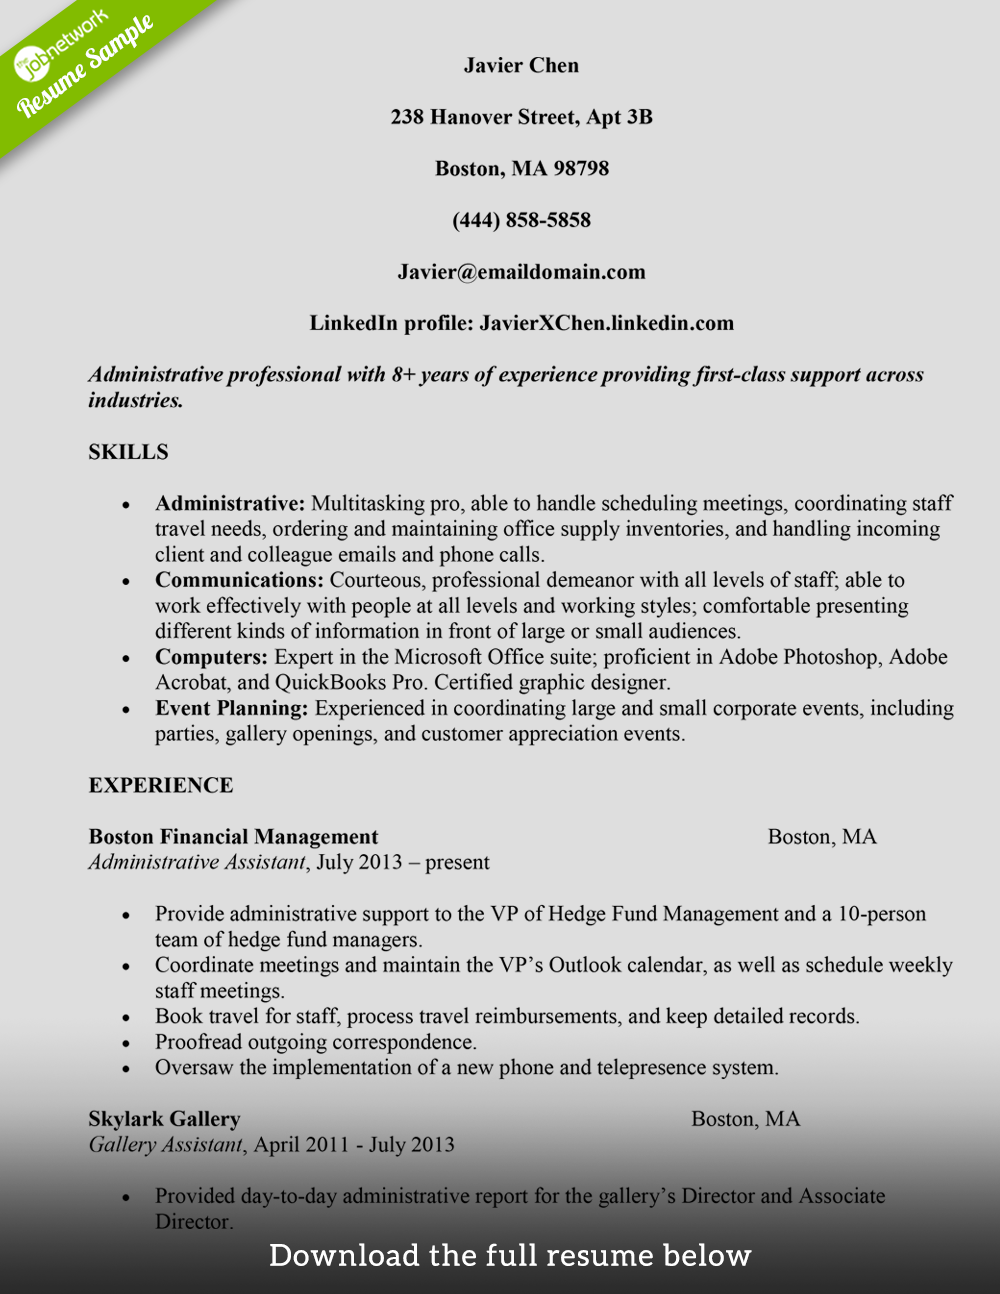 Administrative Assistant Resume Javier Chen  Examples Of Executive Assistant Resumes